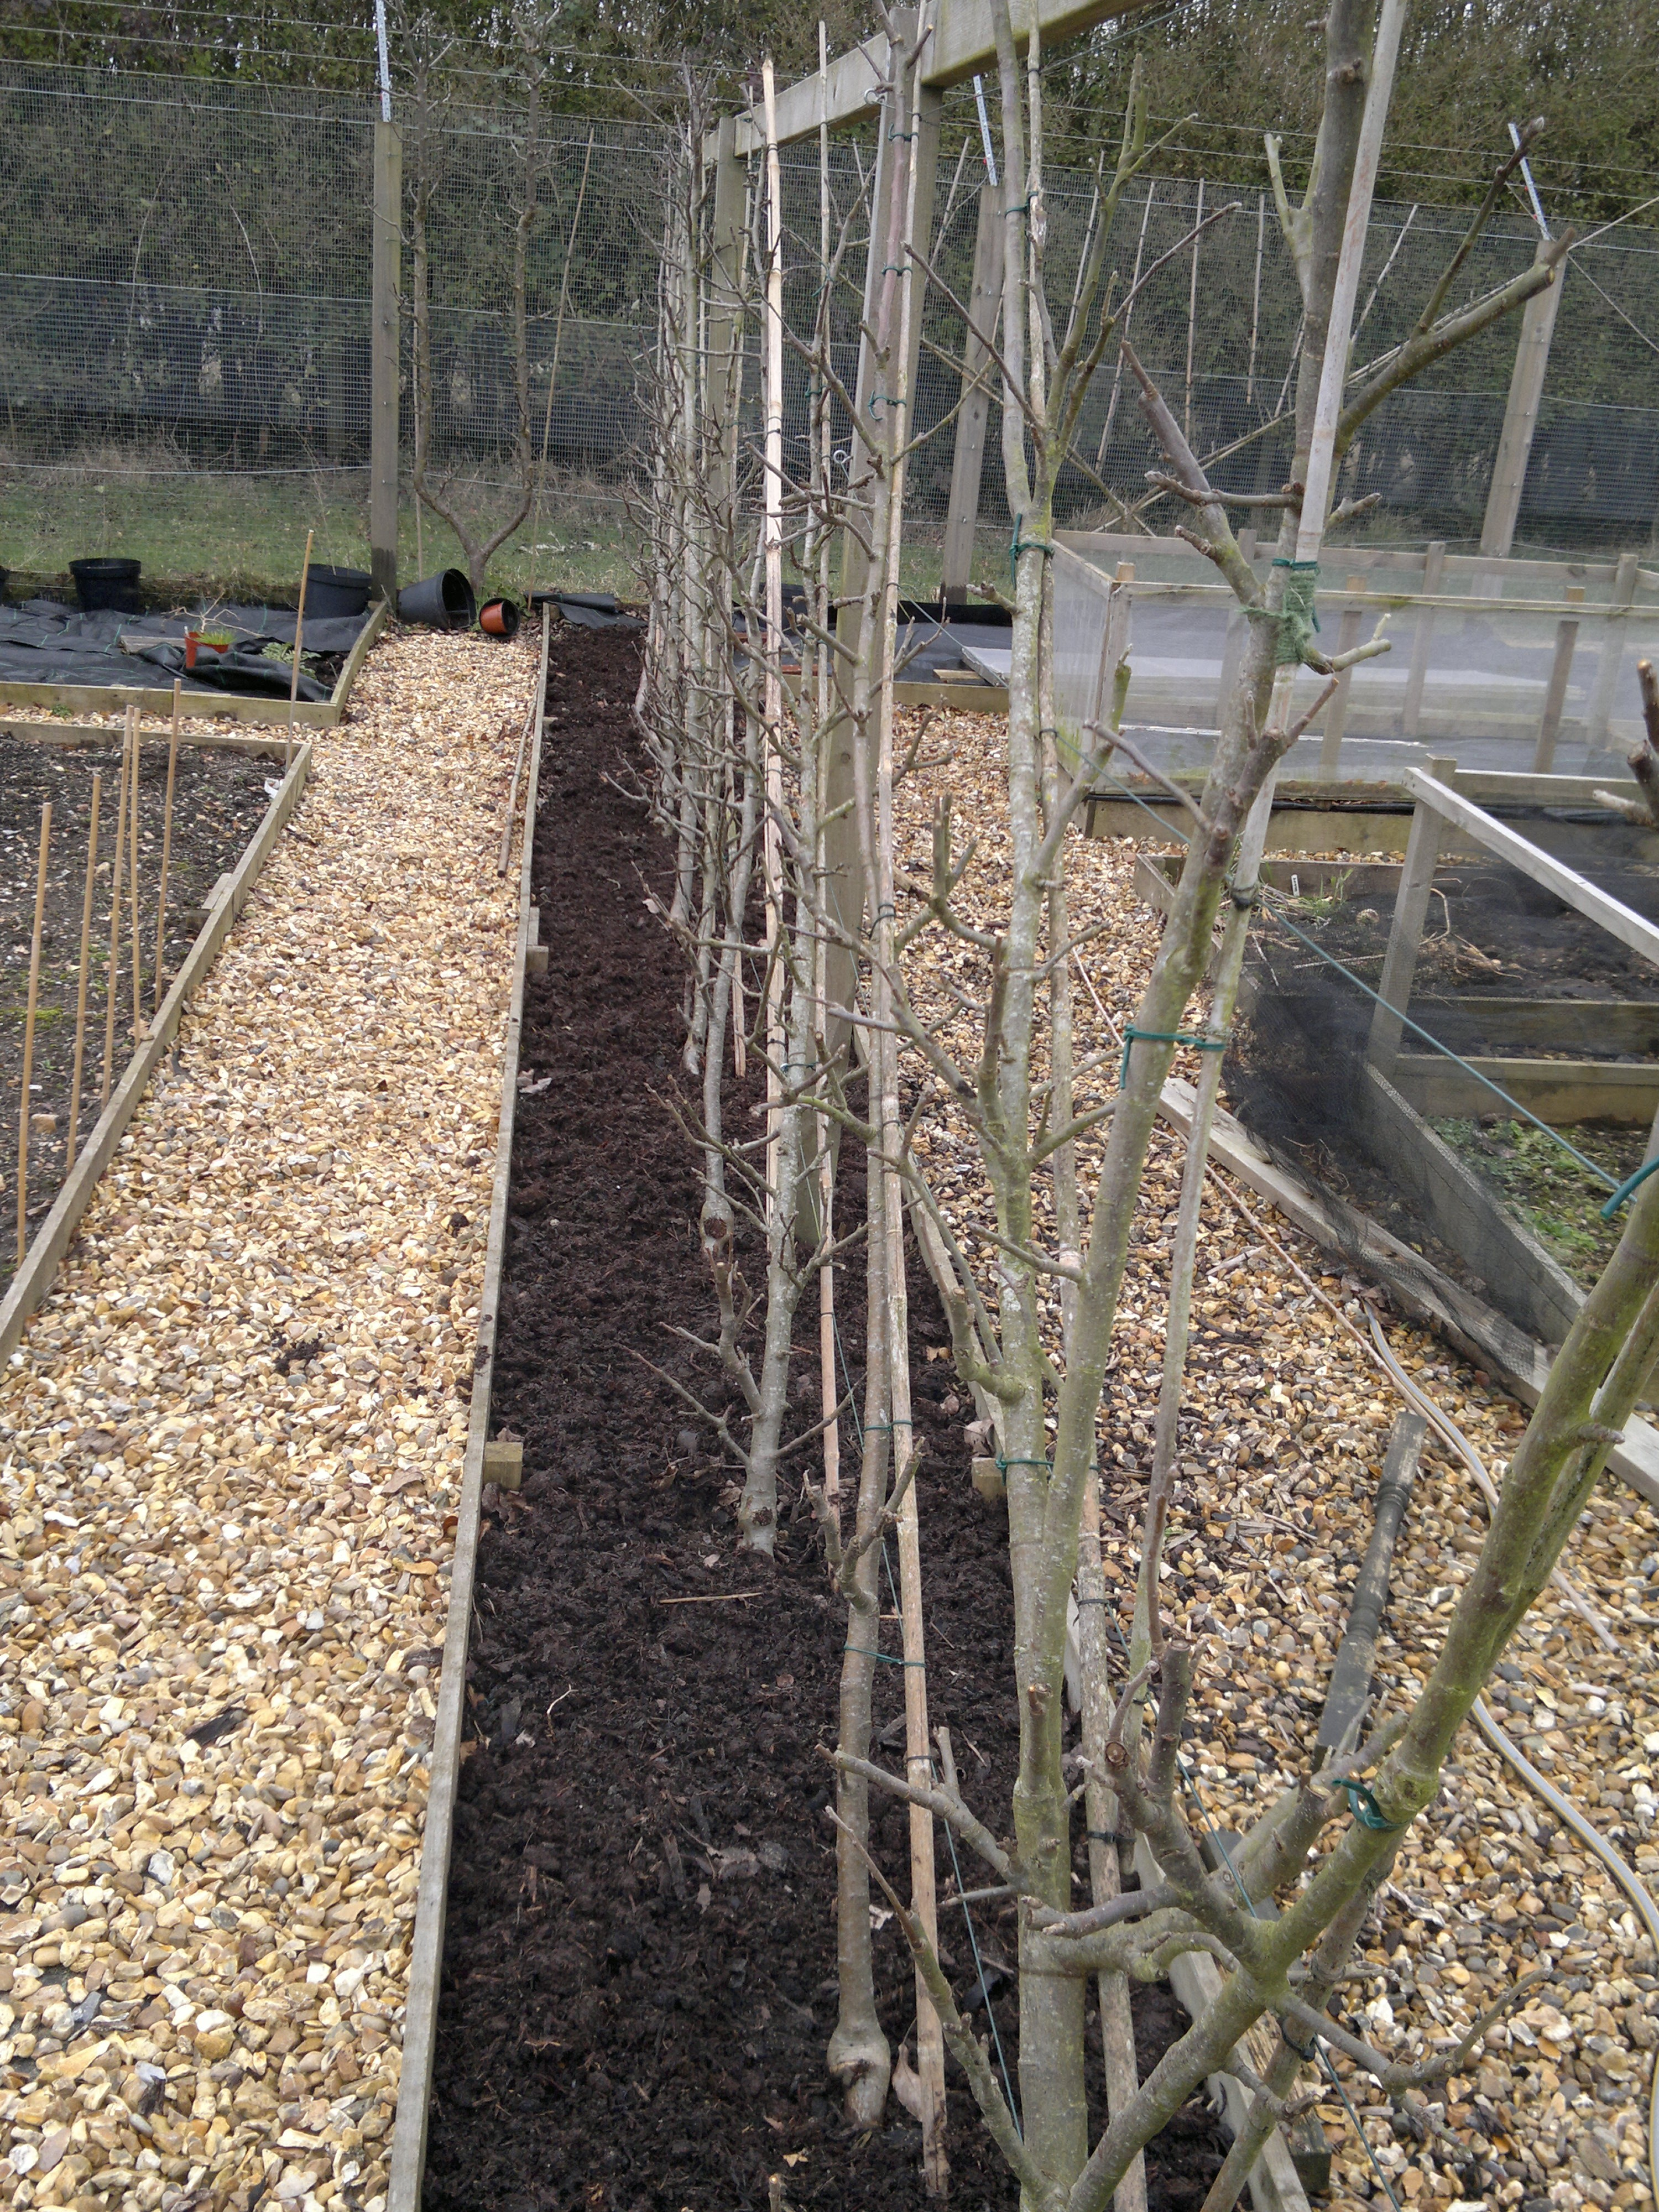 Cordon apples, pruned and retied